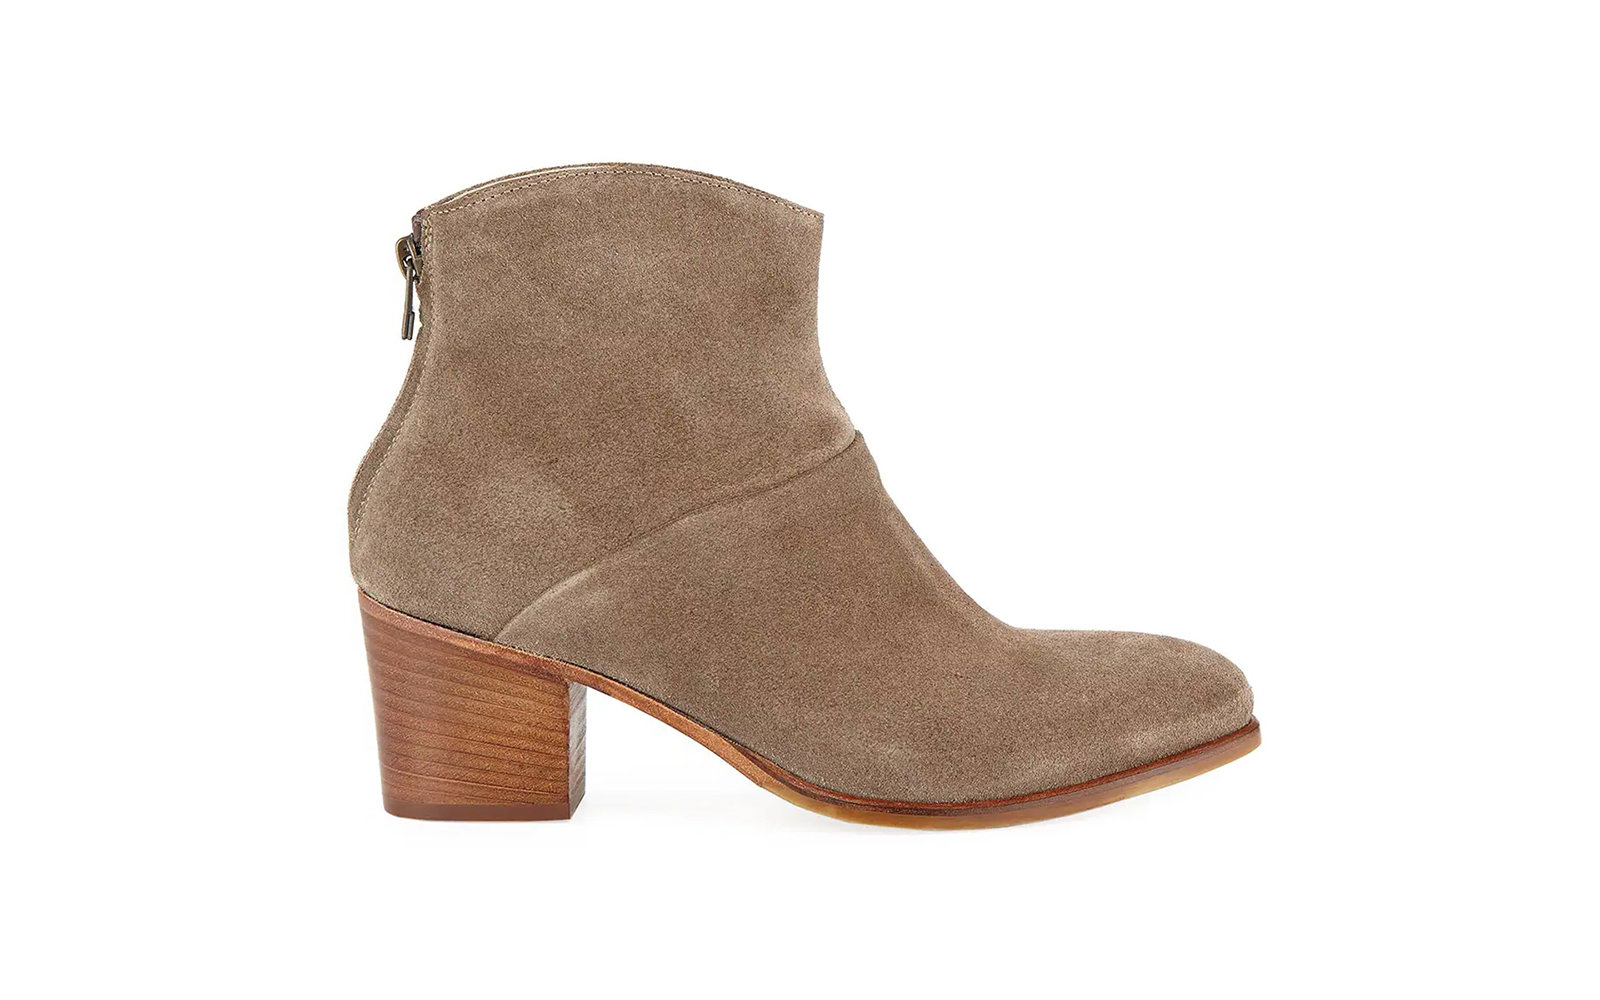 Best Winter Travel Boots: Italeau Daniela Waterproof Suede Ankle Booties